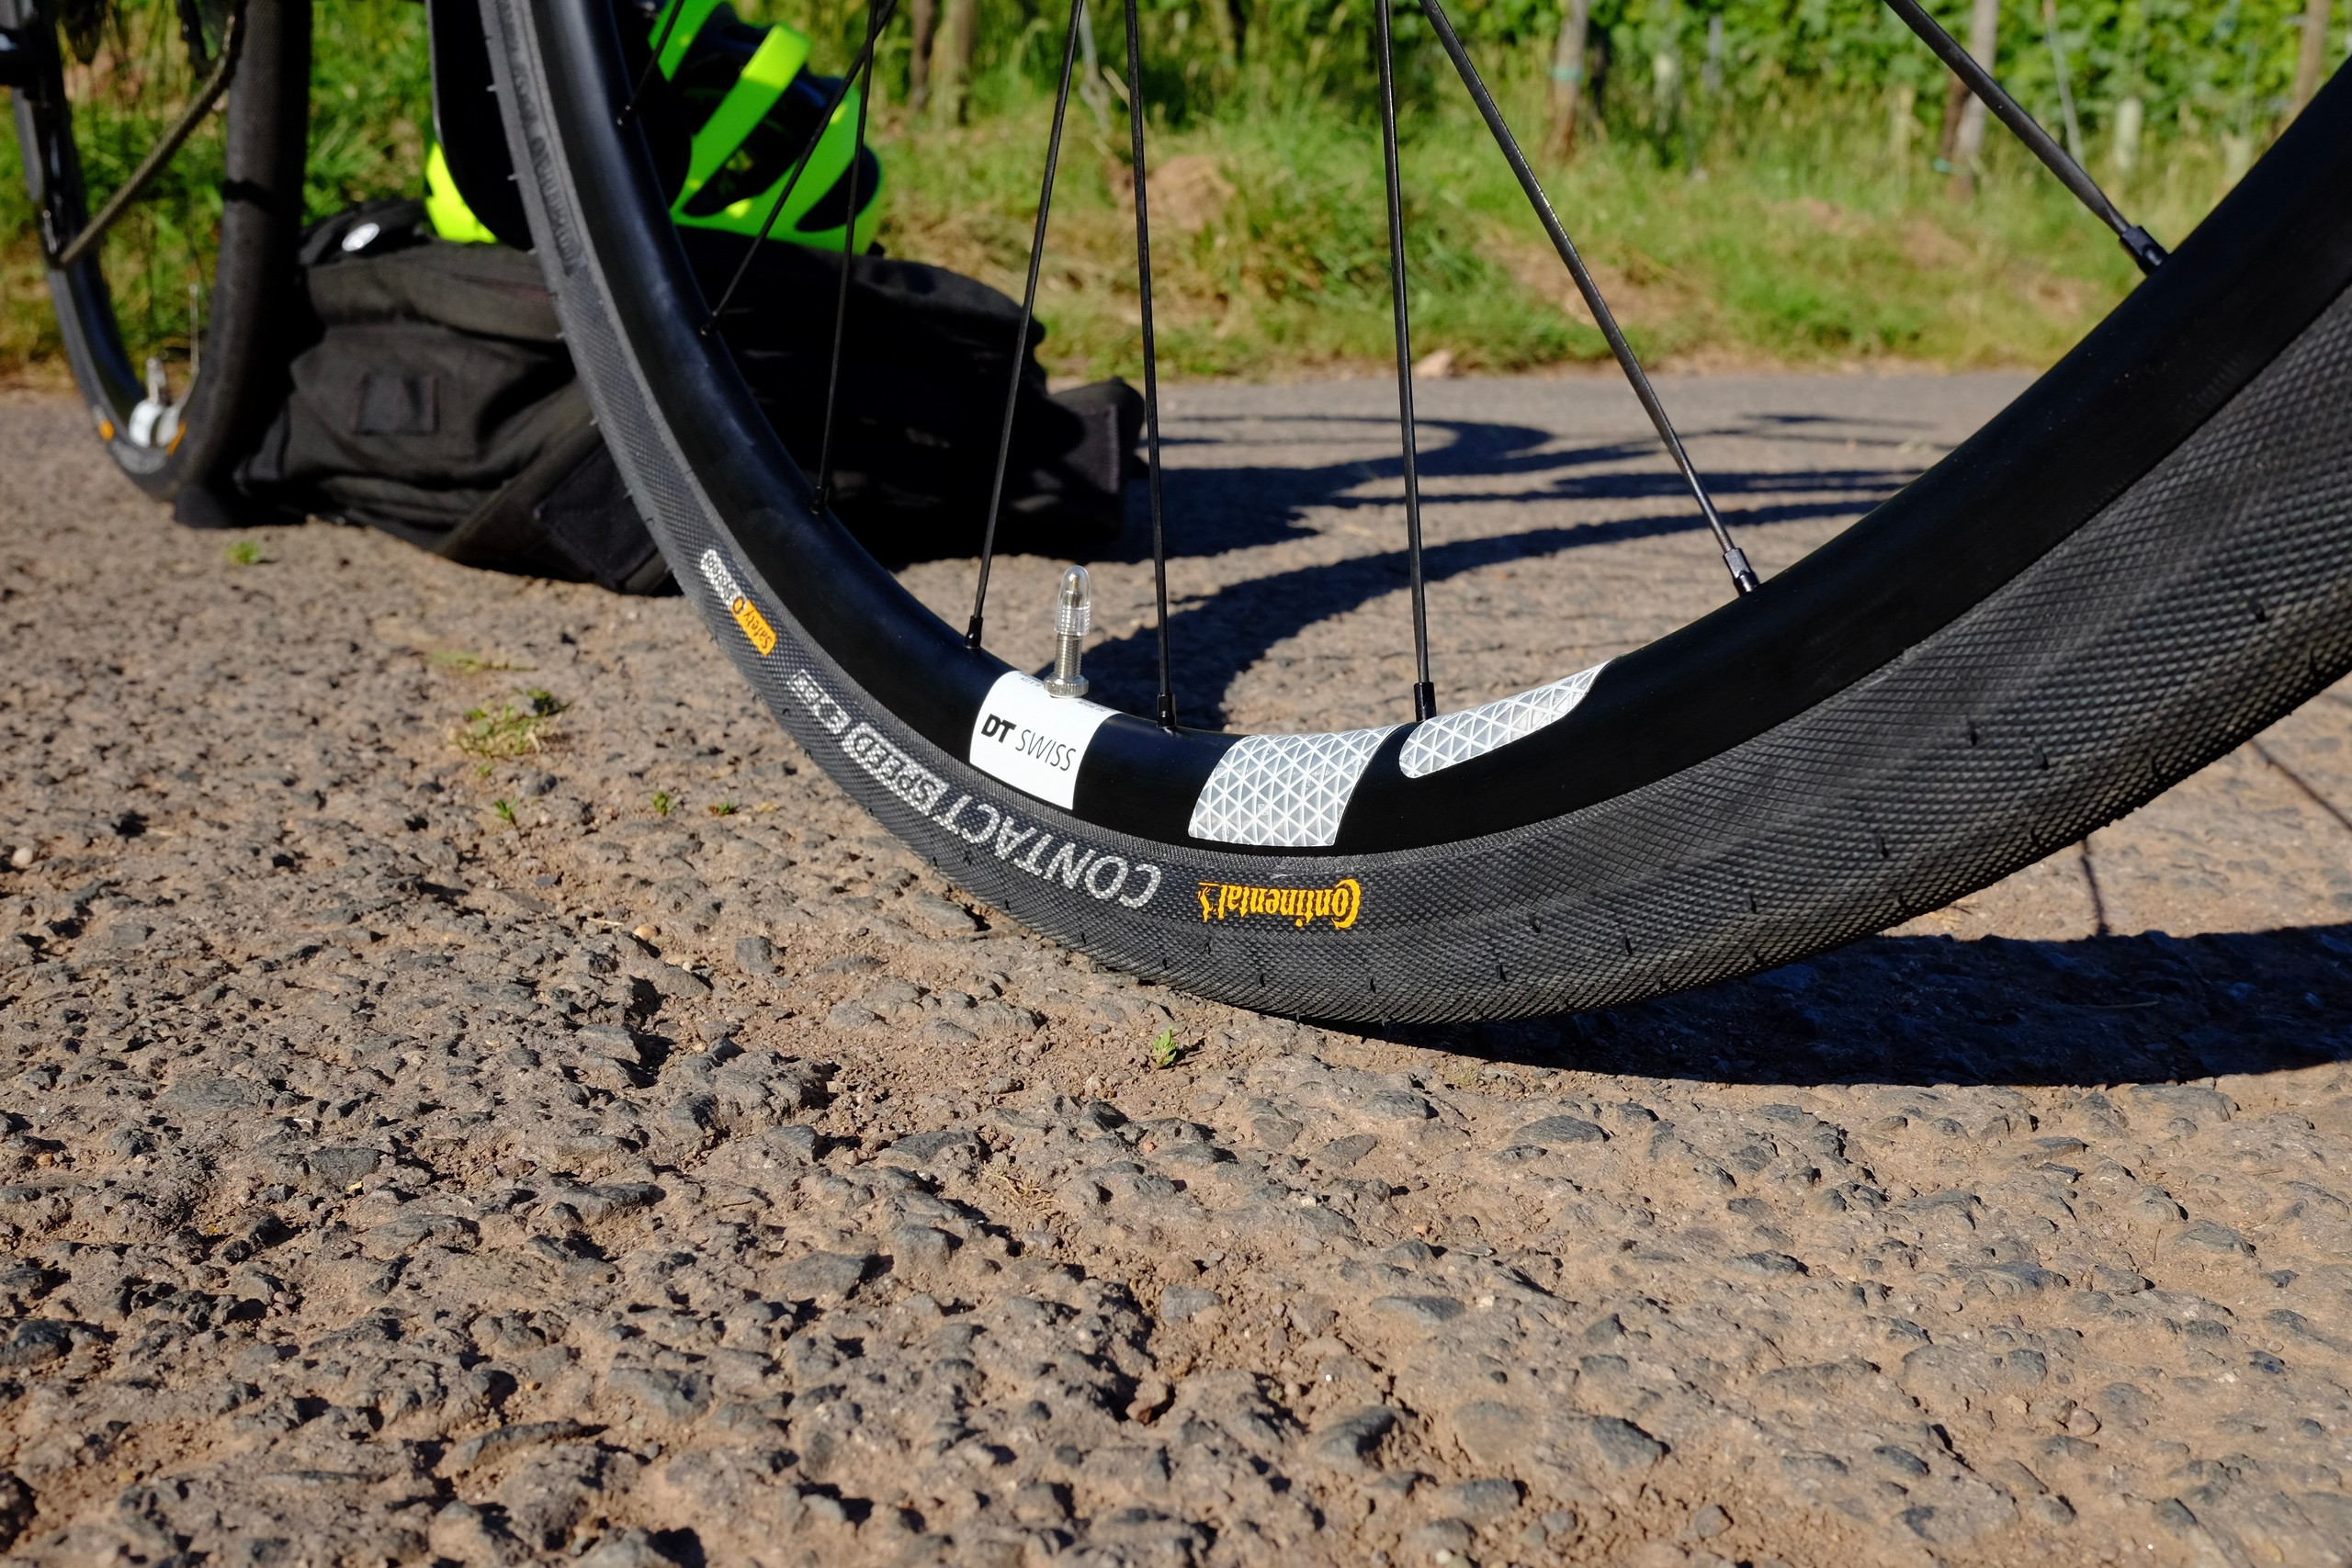 DT Swiss rim, Continental tyres, Flectr reflector